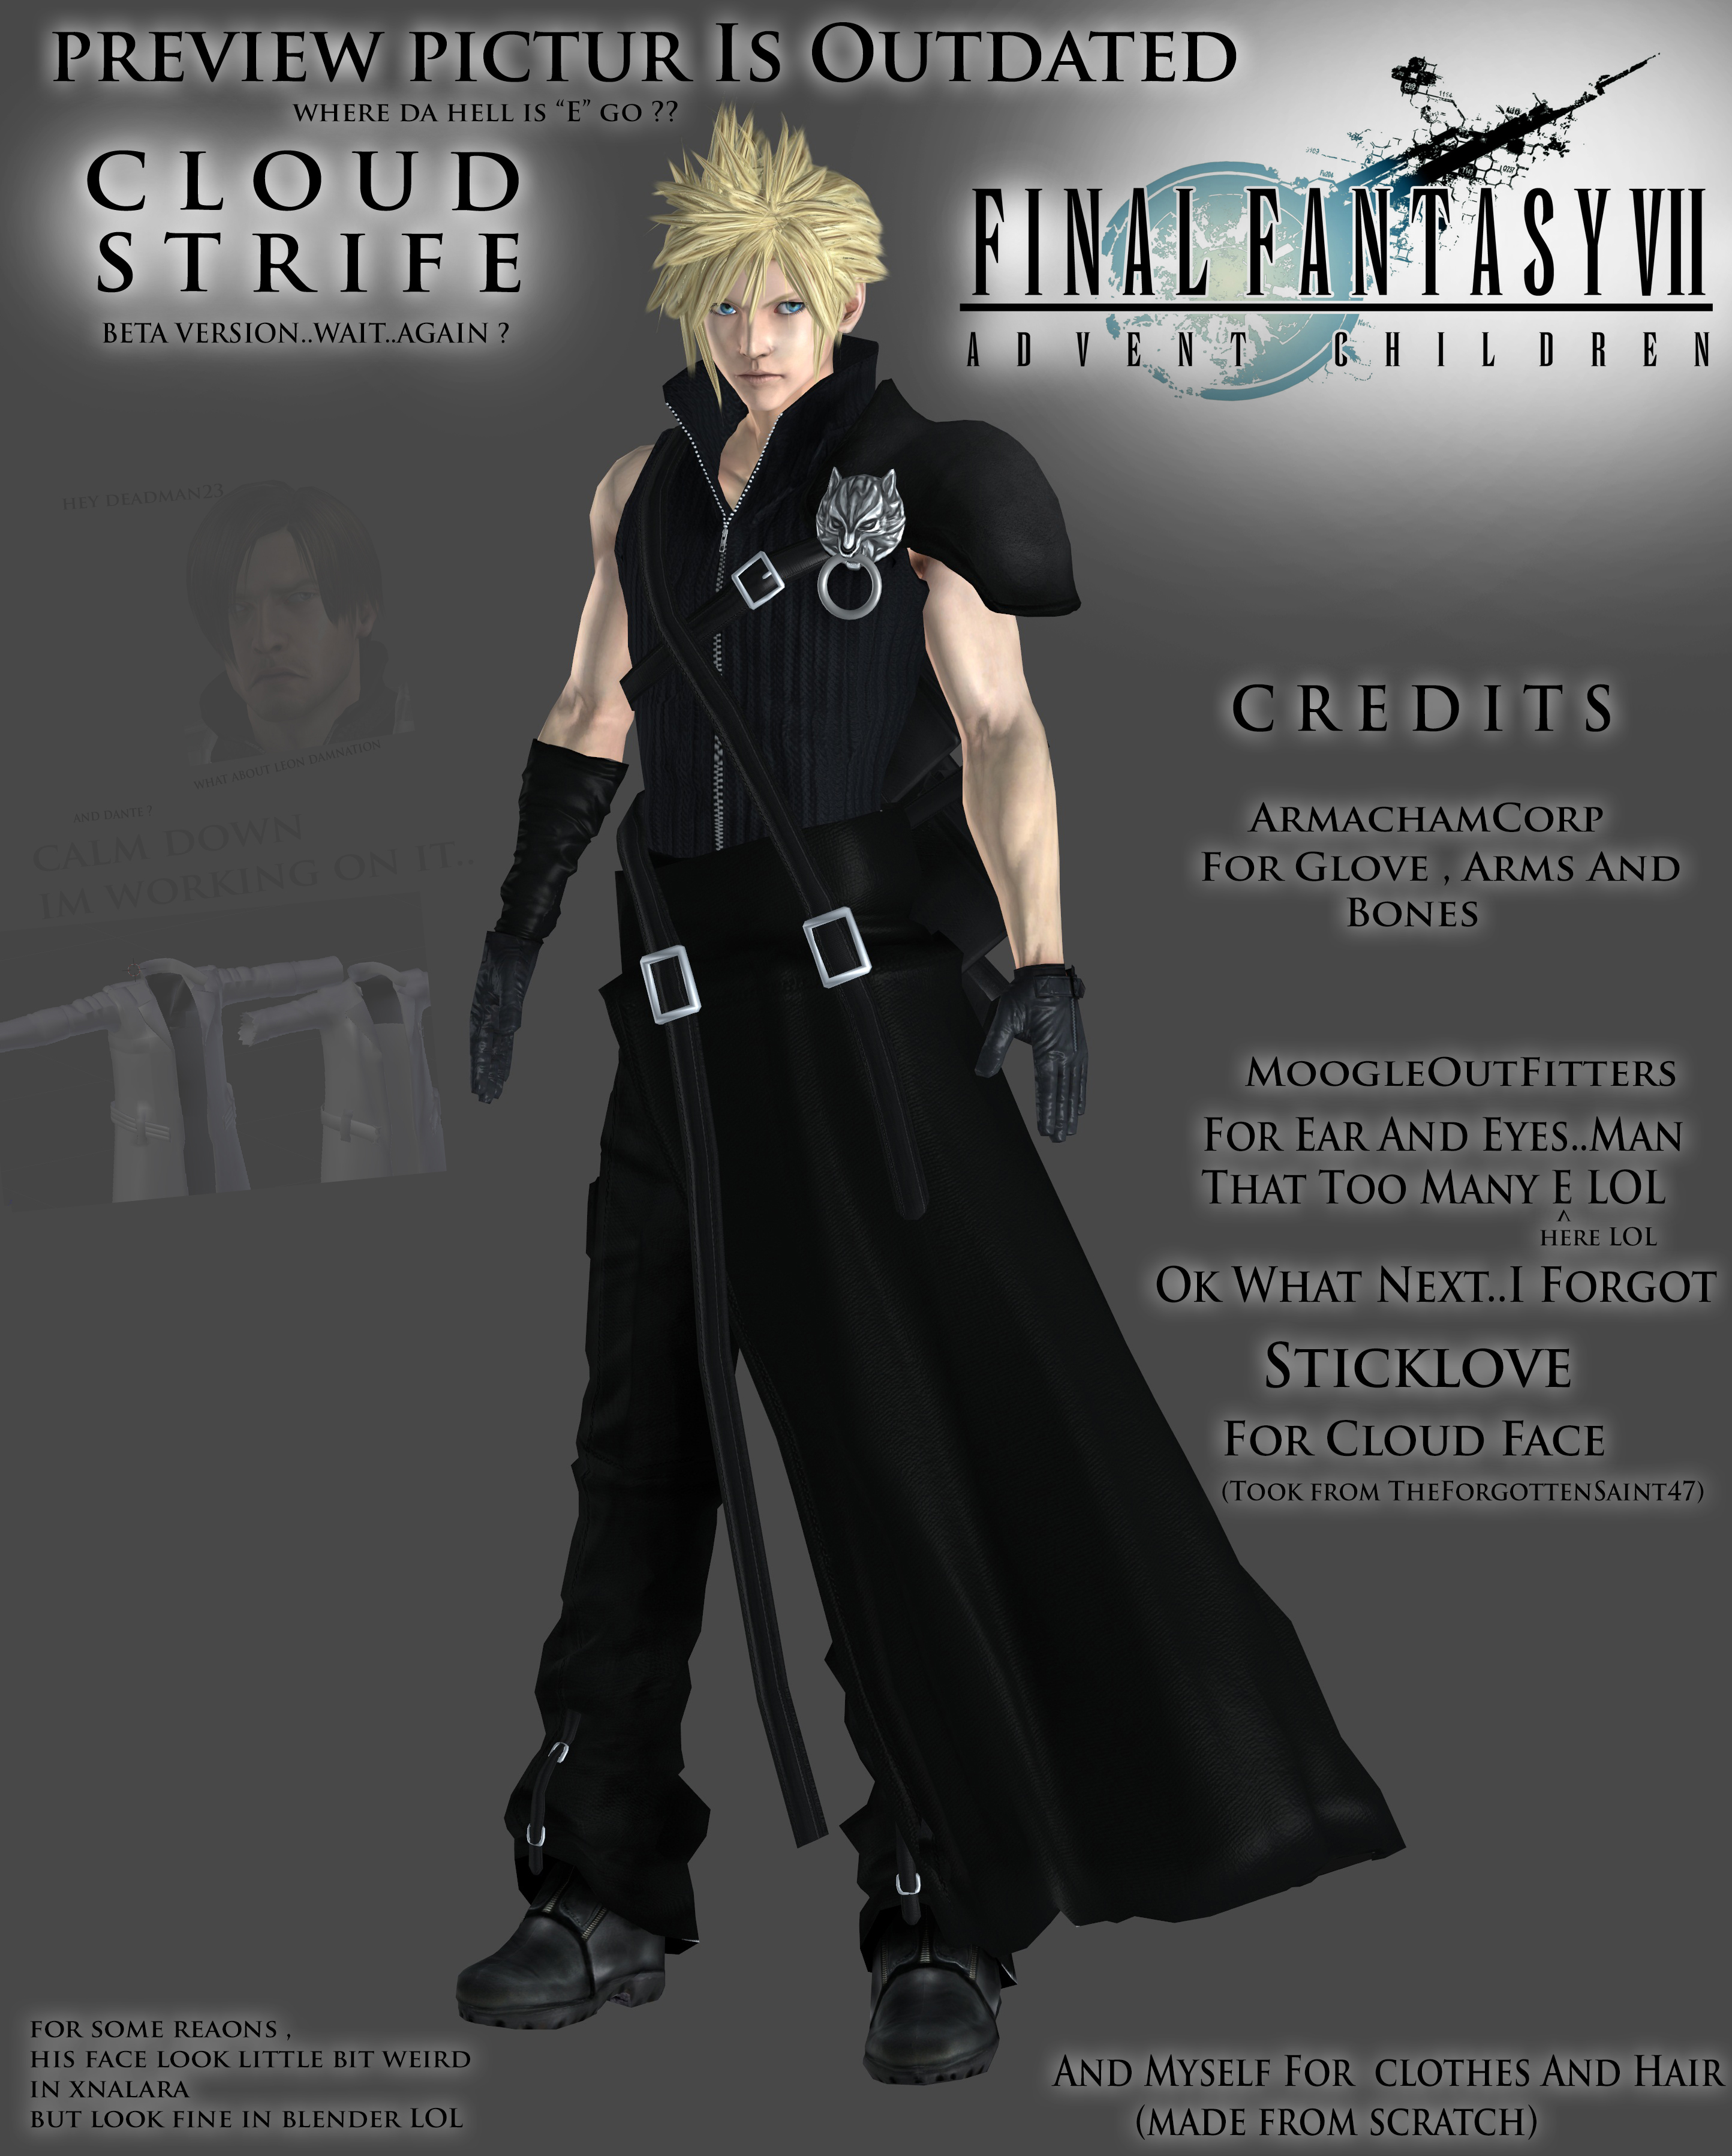 cloud strife final fantasy vii advent children by